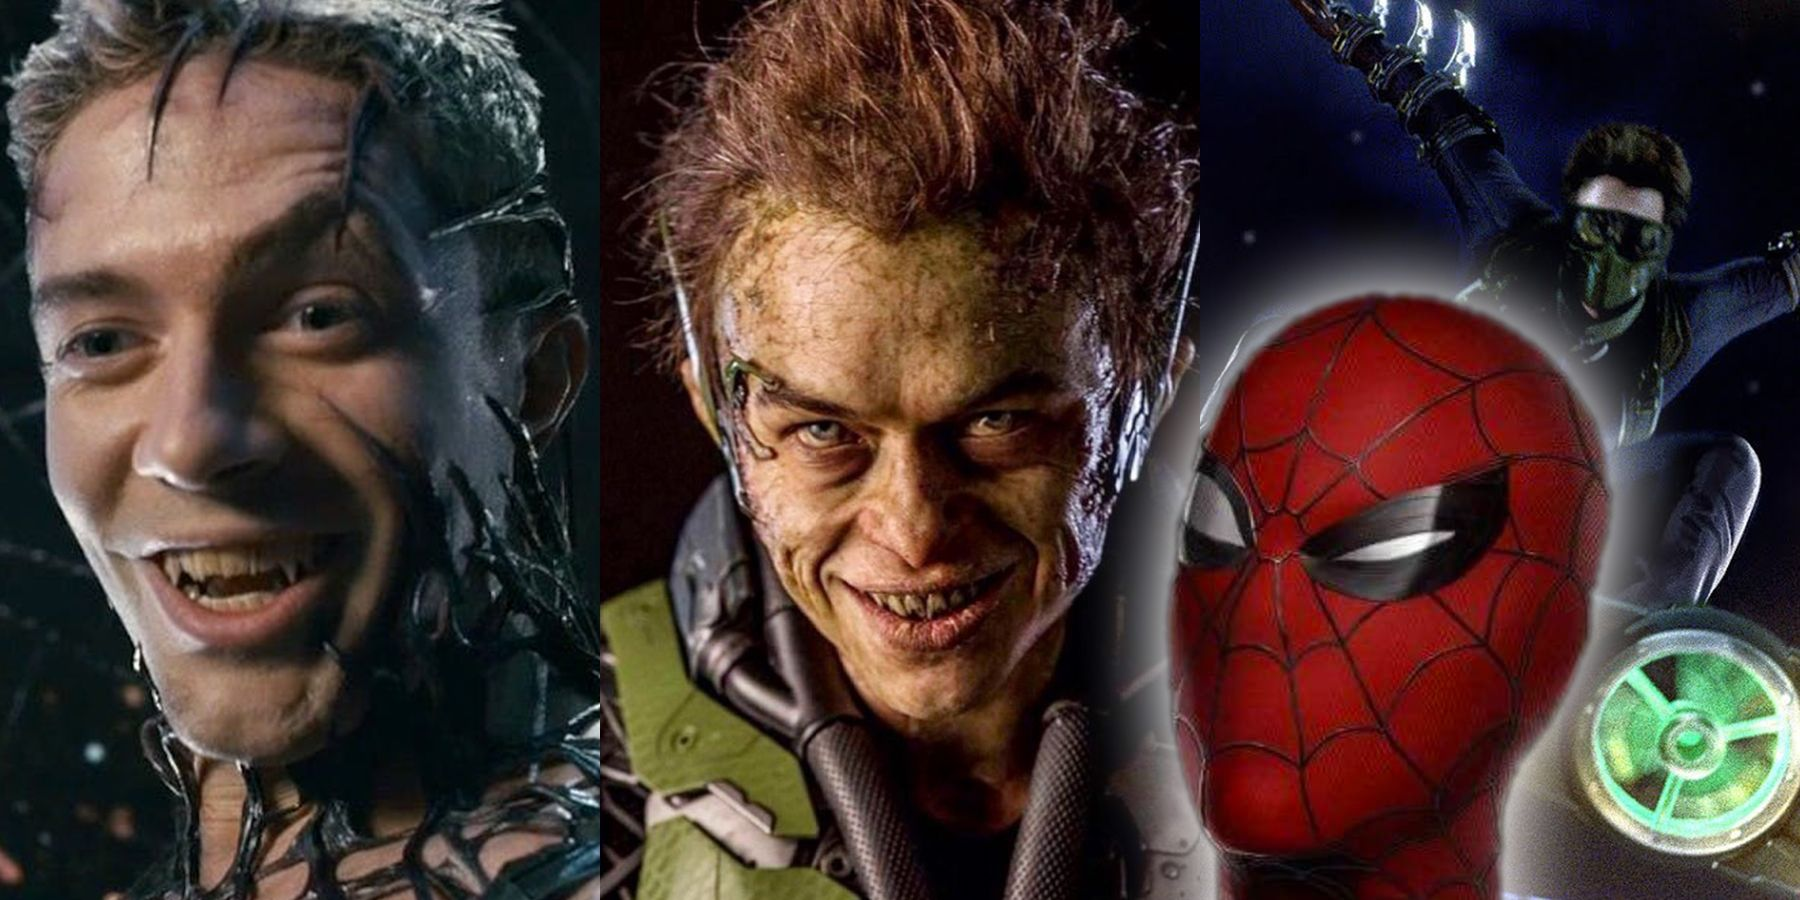 Myers-Briggs® Personality Types of Spider-Man Villains